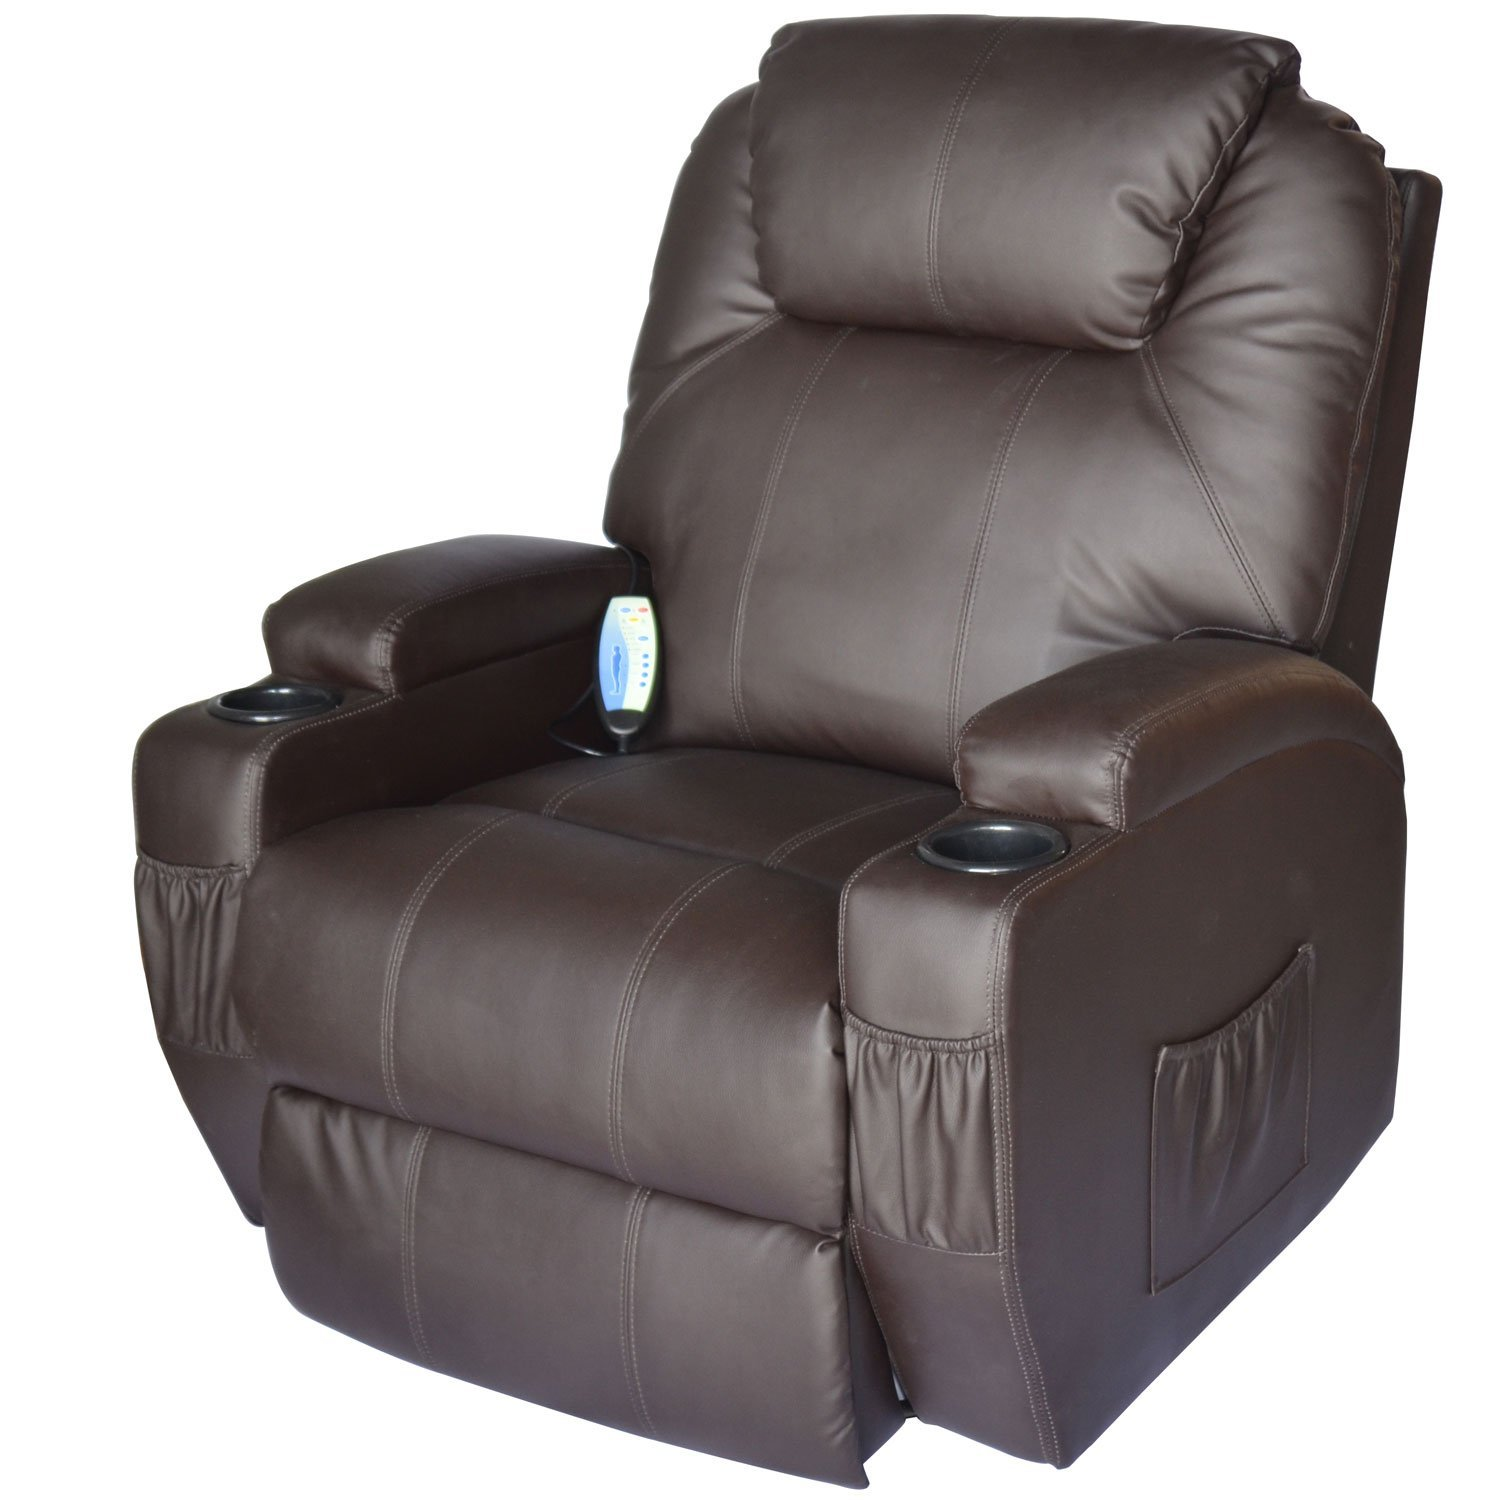 most expensive lazy boy chair small fold up table and chairs best massaging recliners for home